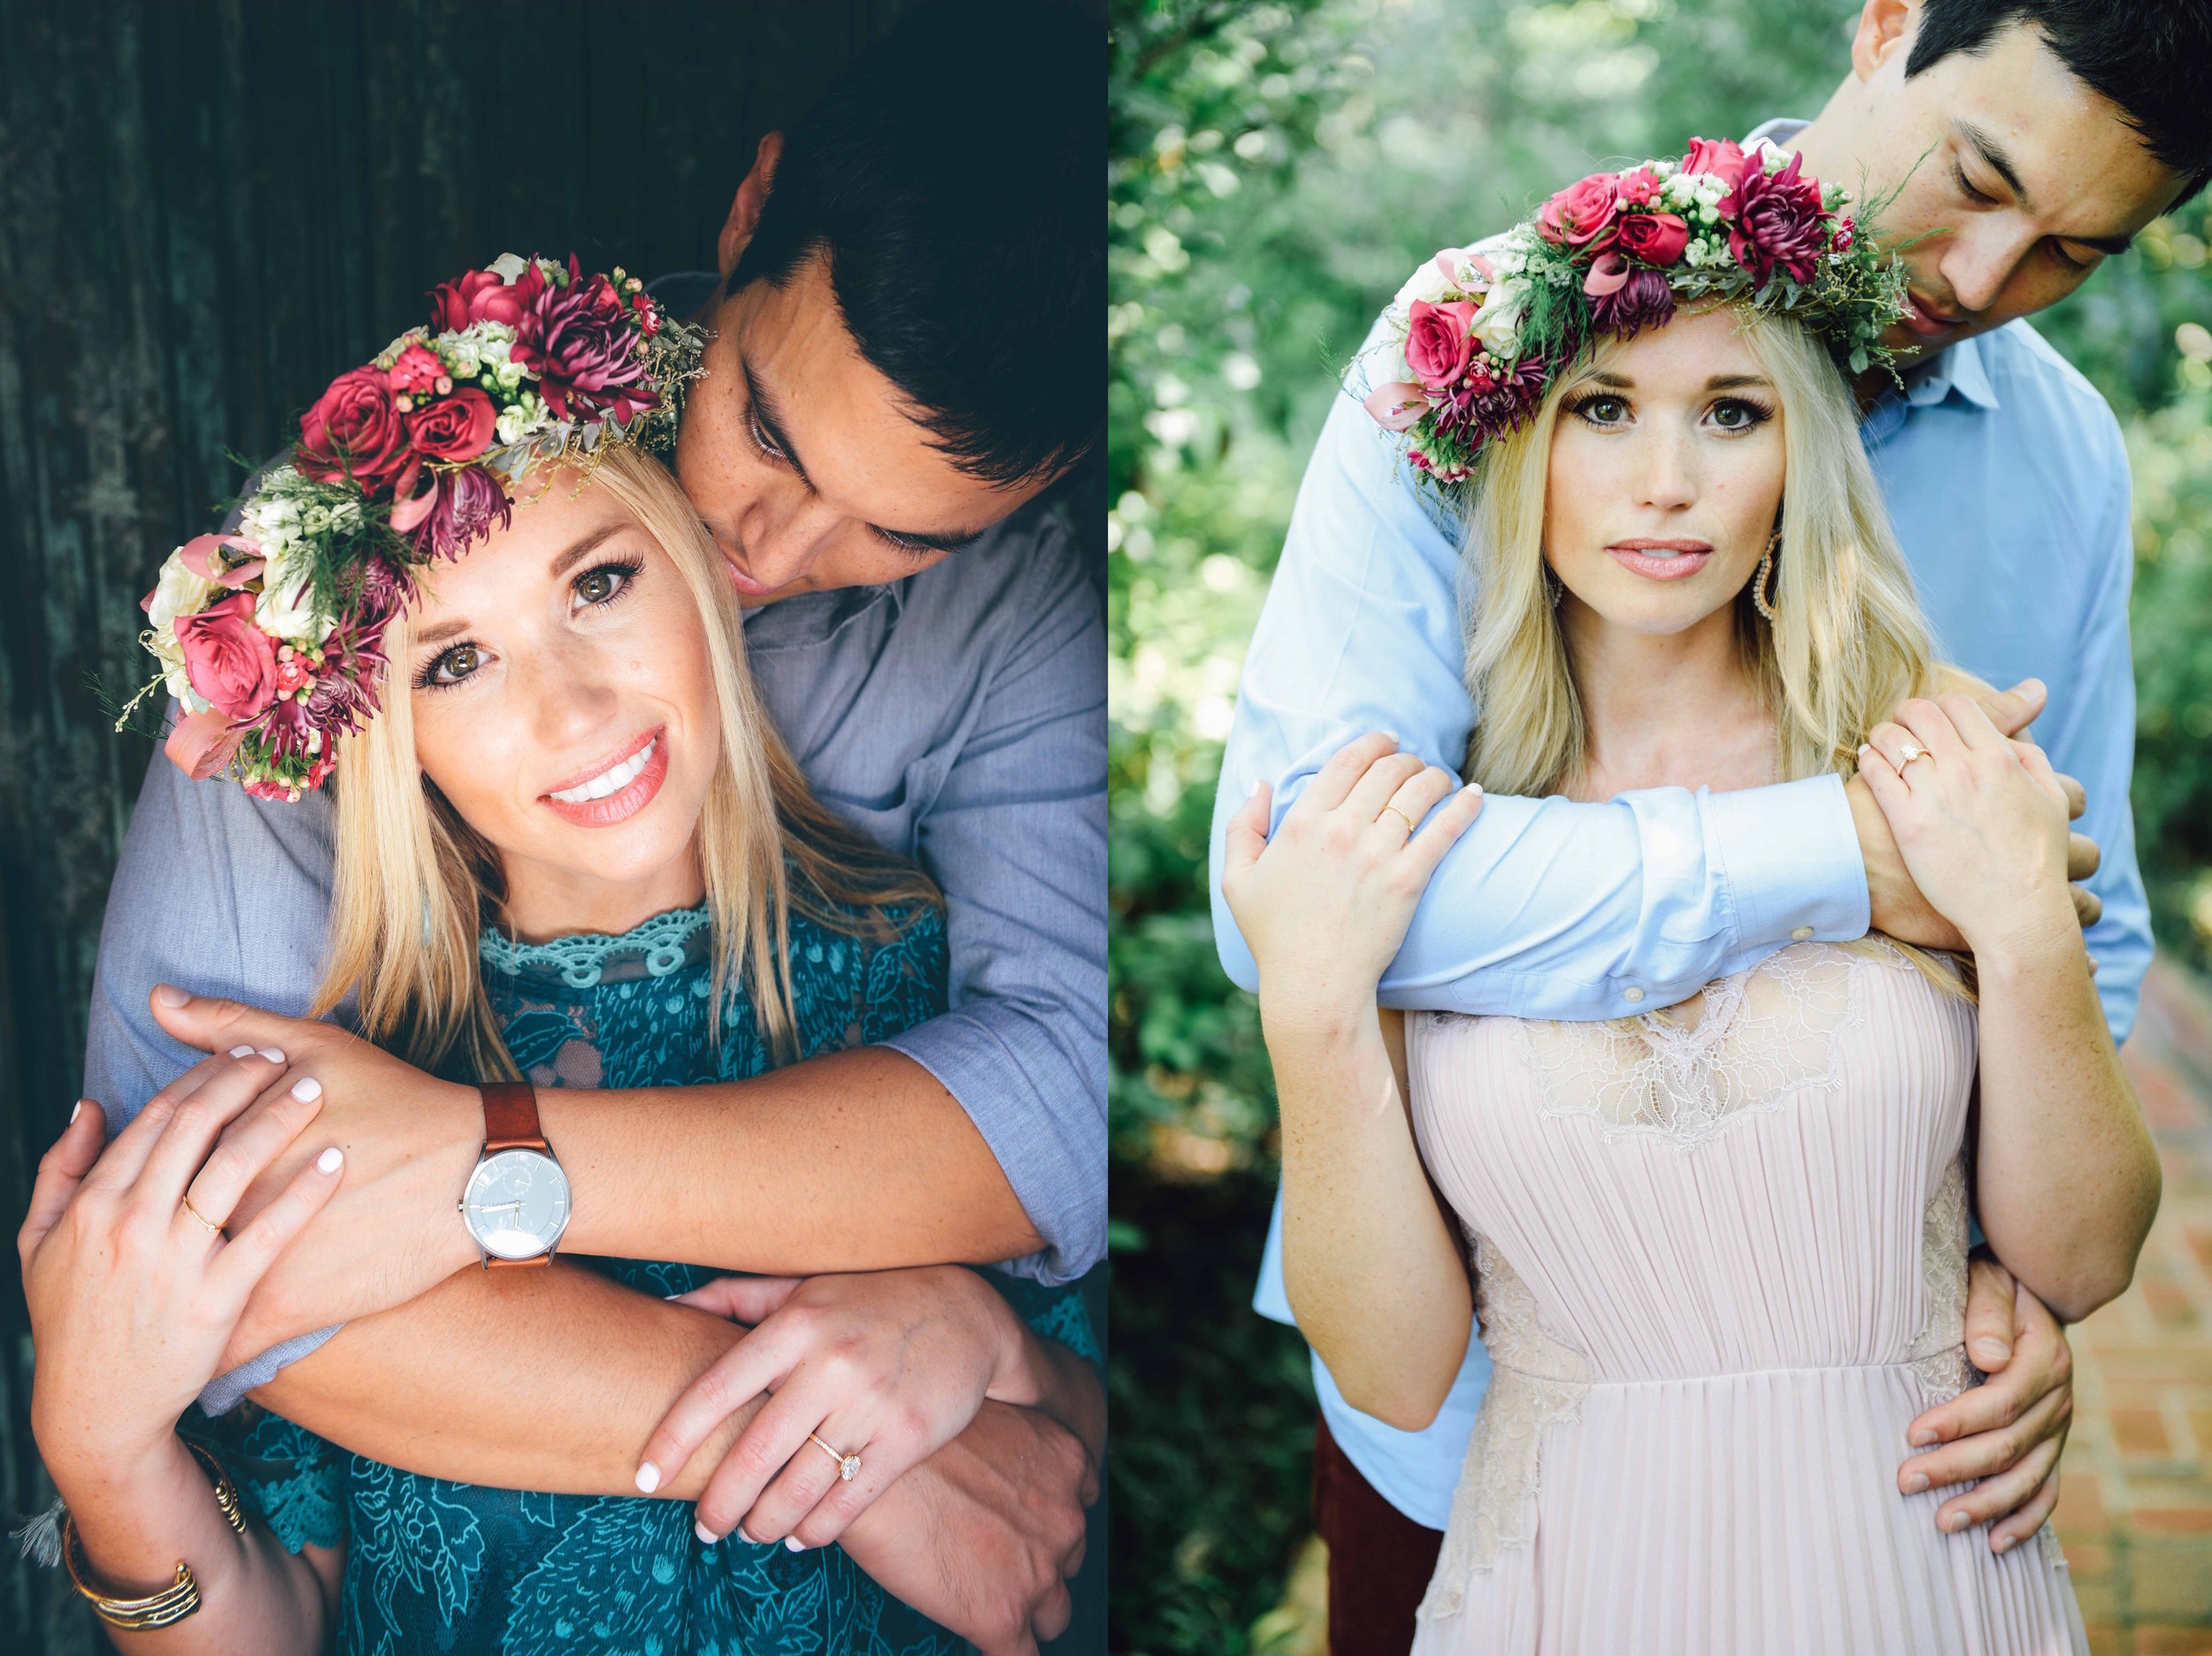 engaged girl with flower crown